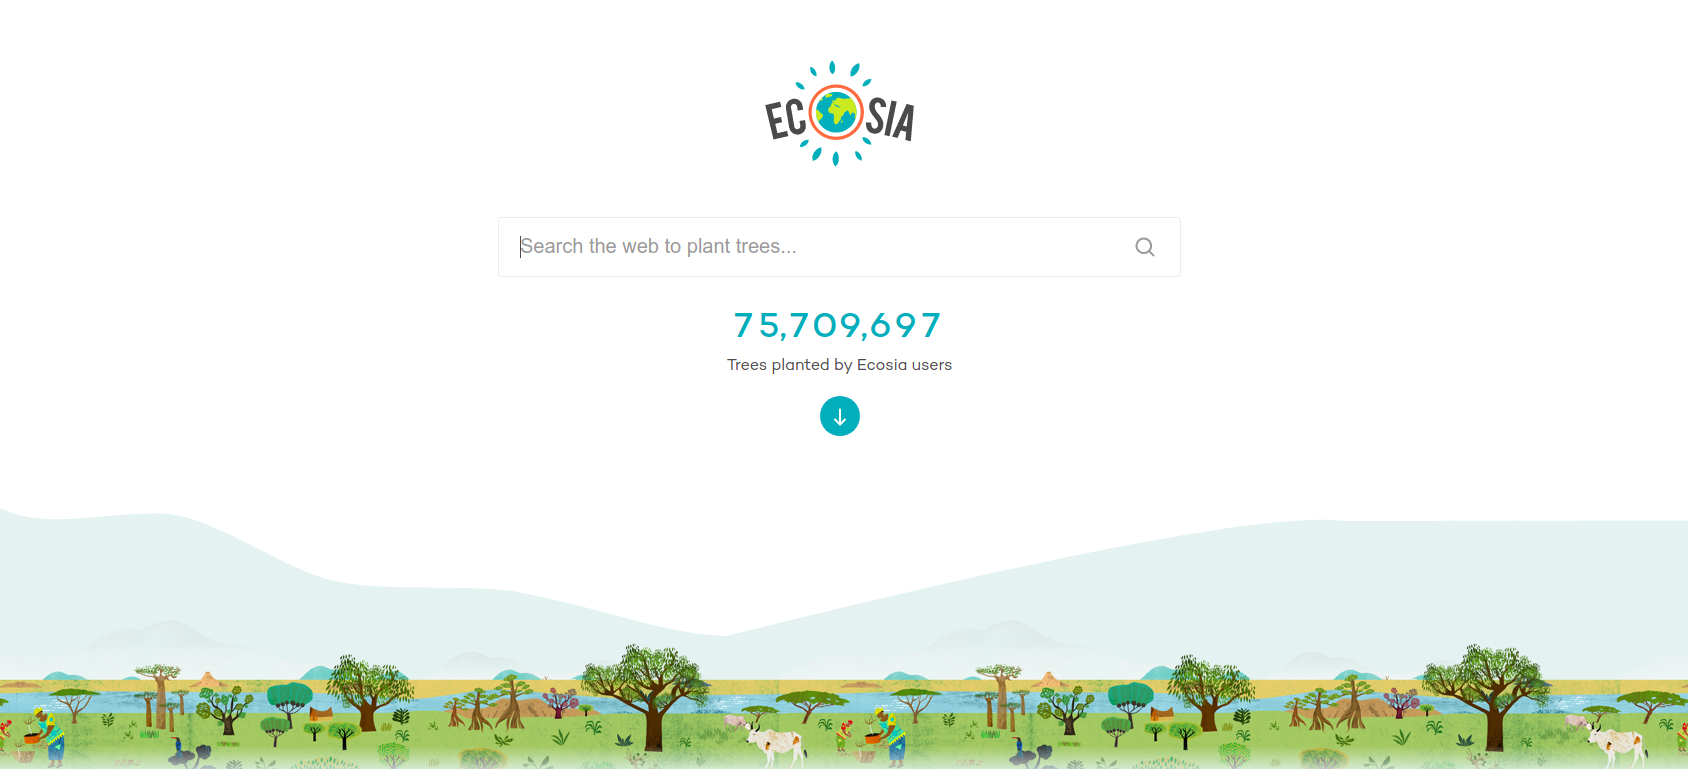 ecosia : google alternative